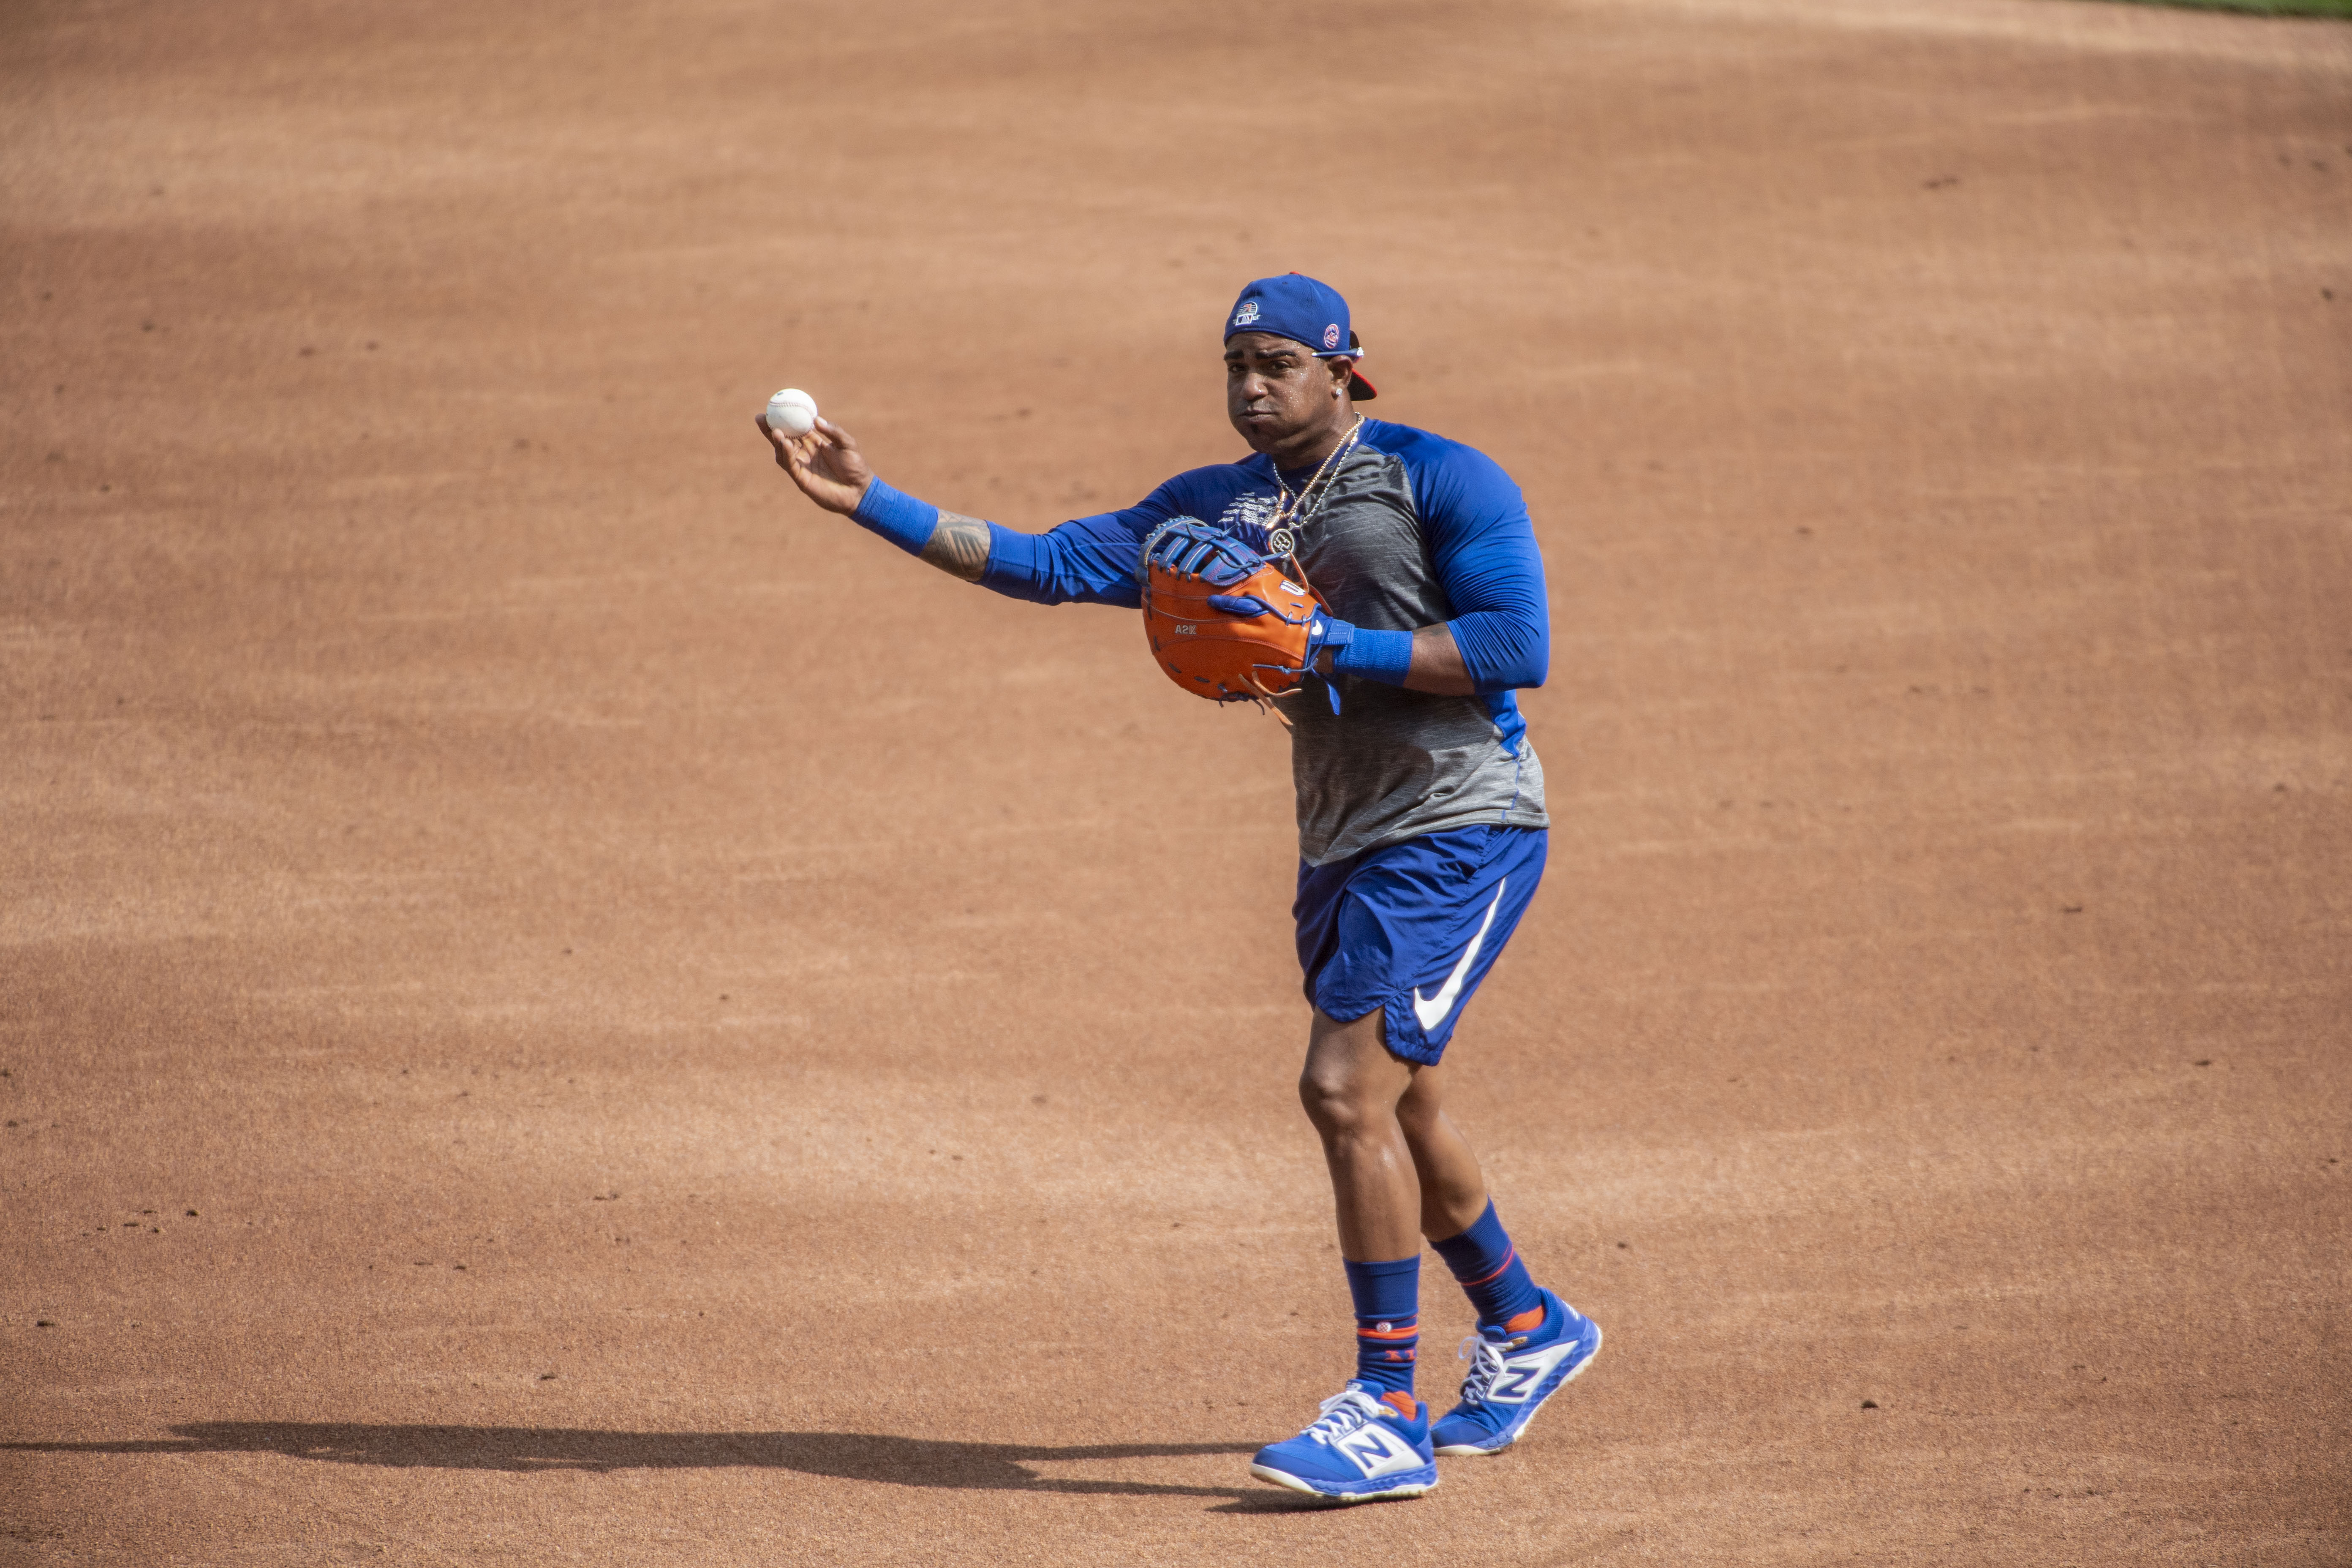 Yoenis Cespedes of the New York Mets works out at Citi Field